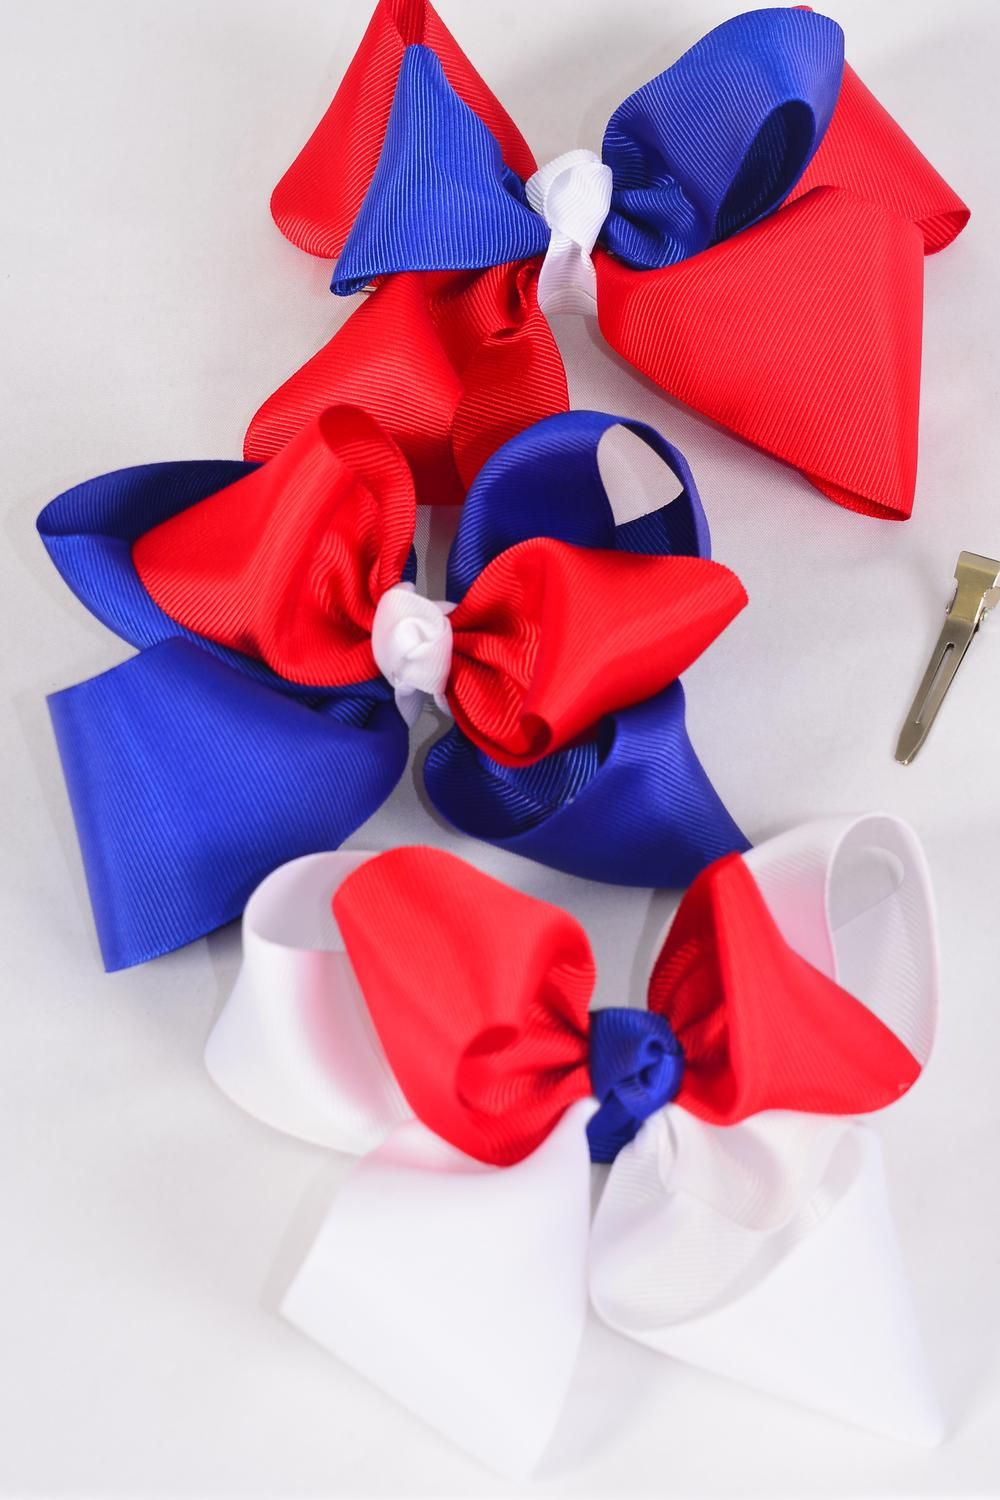 "Hair Bow Extra Jumbo Double Layer Grosgrain Bowtie Triton Red White Blue Mix/DZ **Alligator Clip** Bow-6""x 6"" Wide,4 of each Color Asst,Clip Strip & UPC Code"